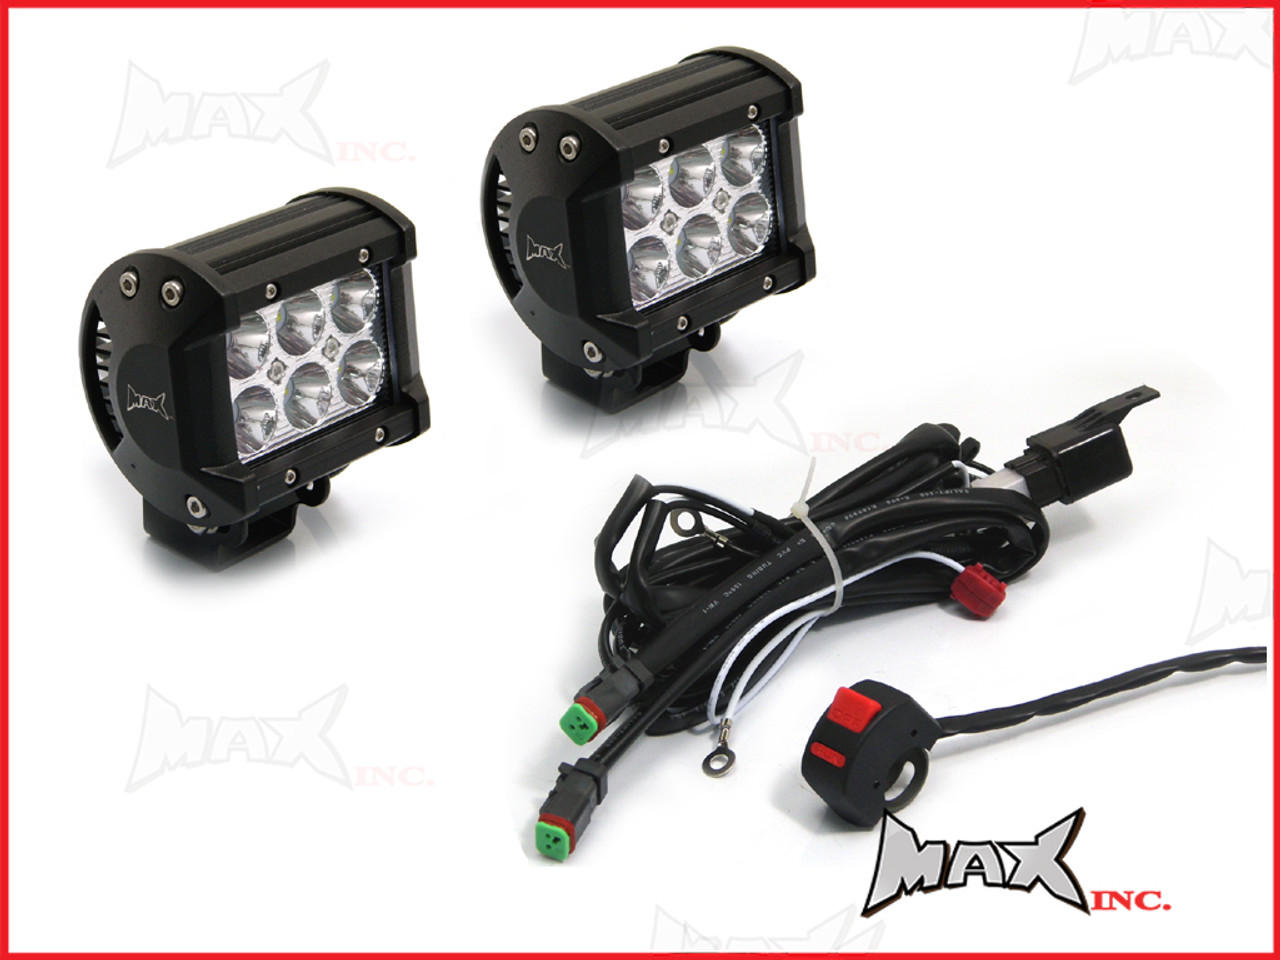 Spotlight Universal Wiring Harness Simple Schema 10 Pin Connector Motorcycle 18w Cree Led Spot Driving Lights Complete Hyundai